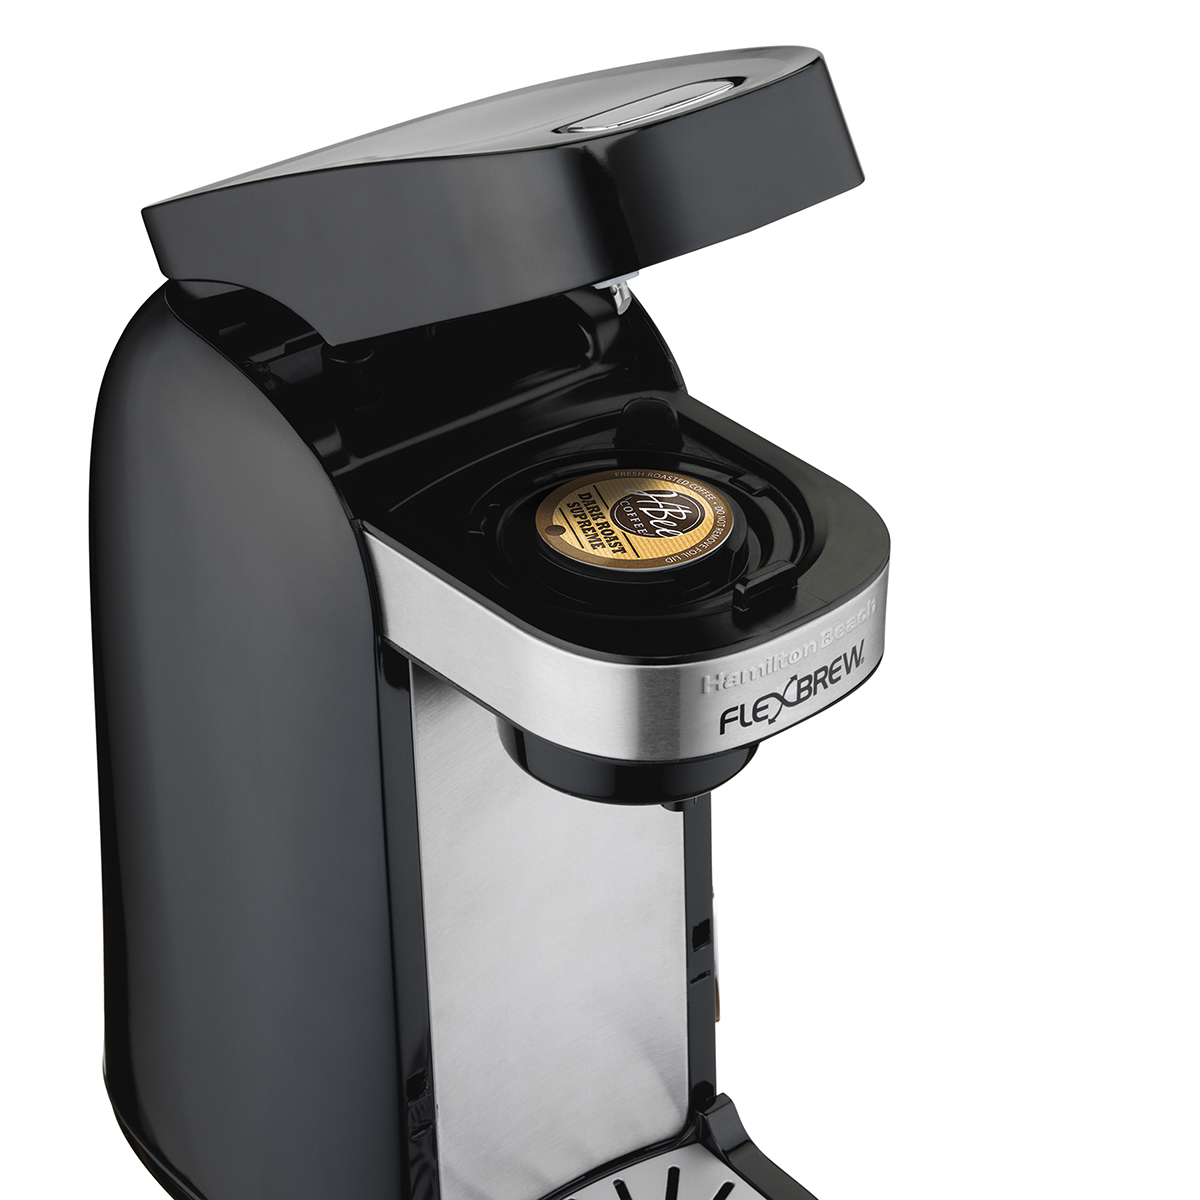 flexbrew coffee maker with a k-cup pod